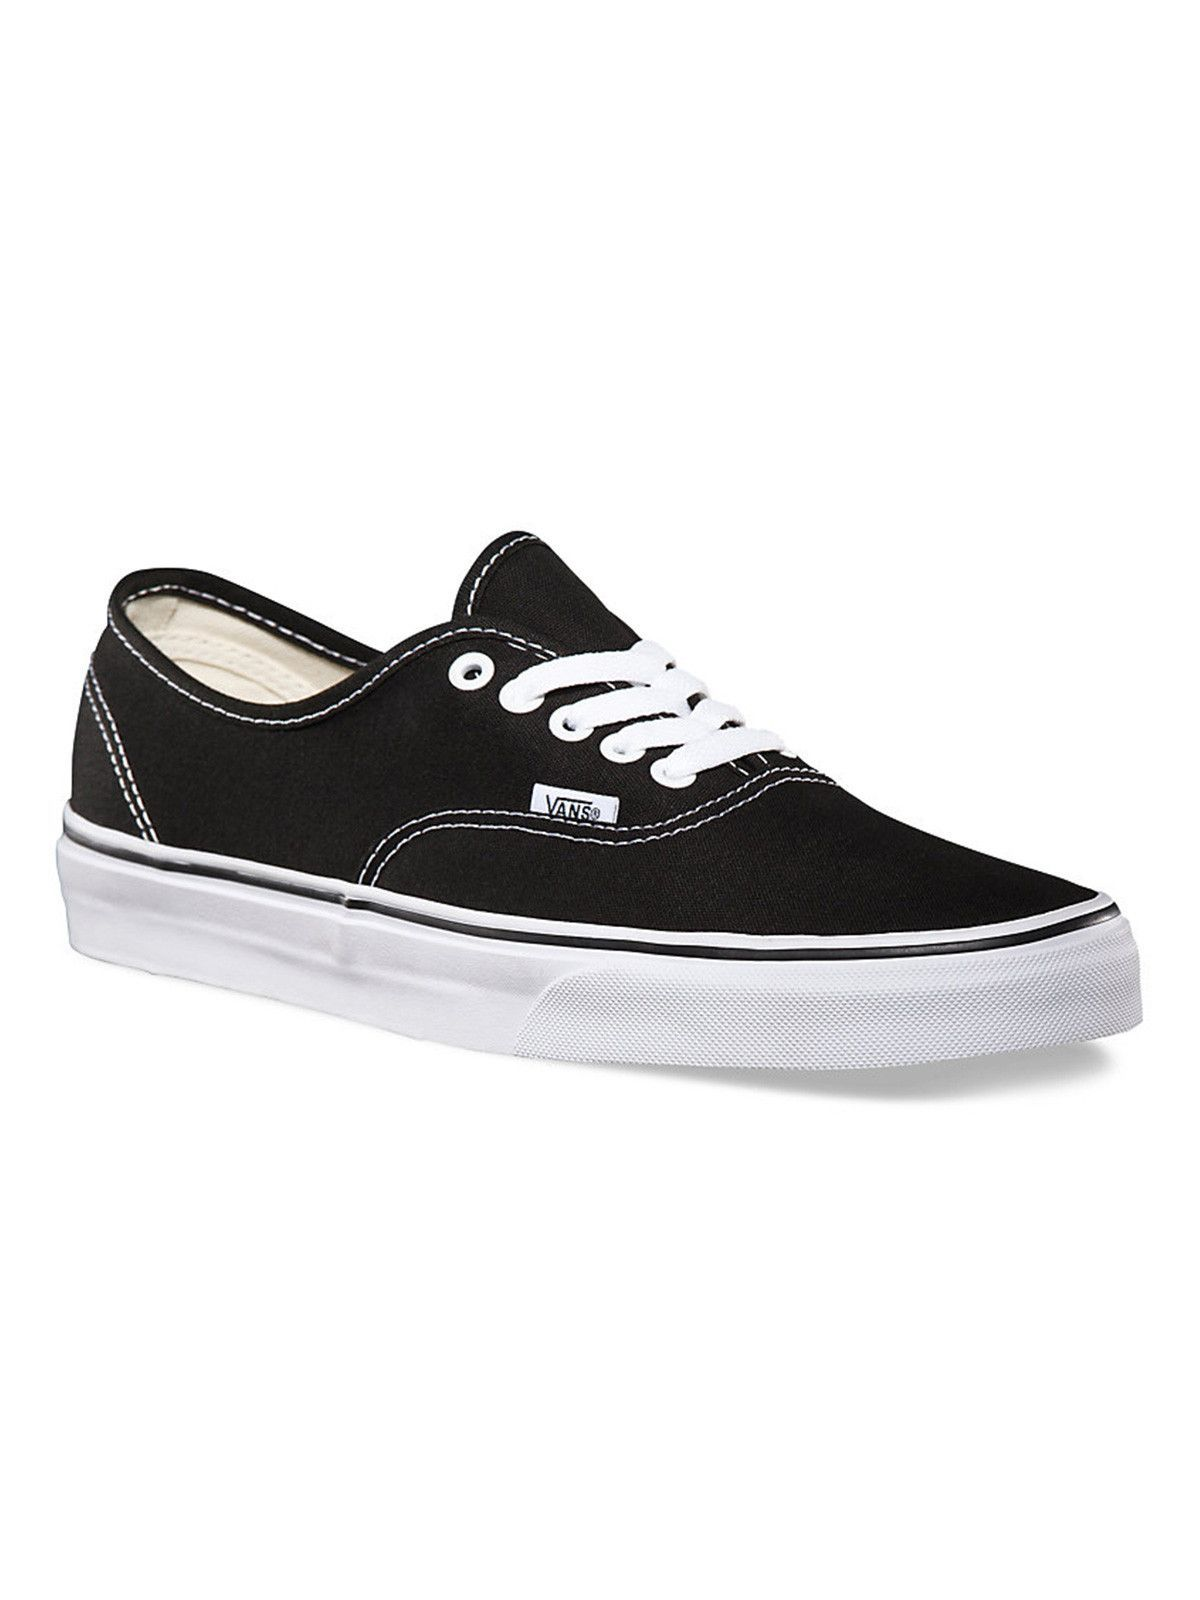 Vans Authentic - Black...in my closet 4b571a965